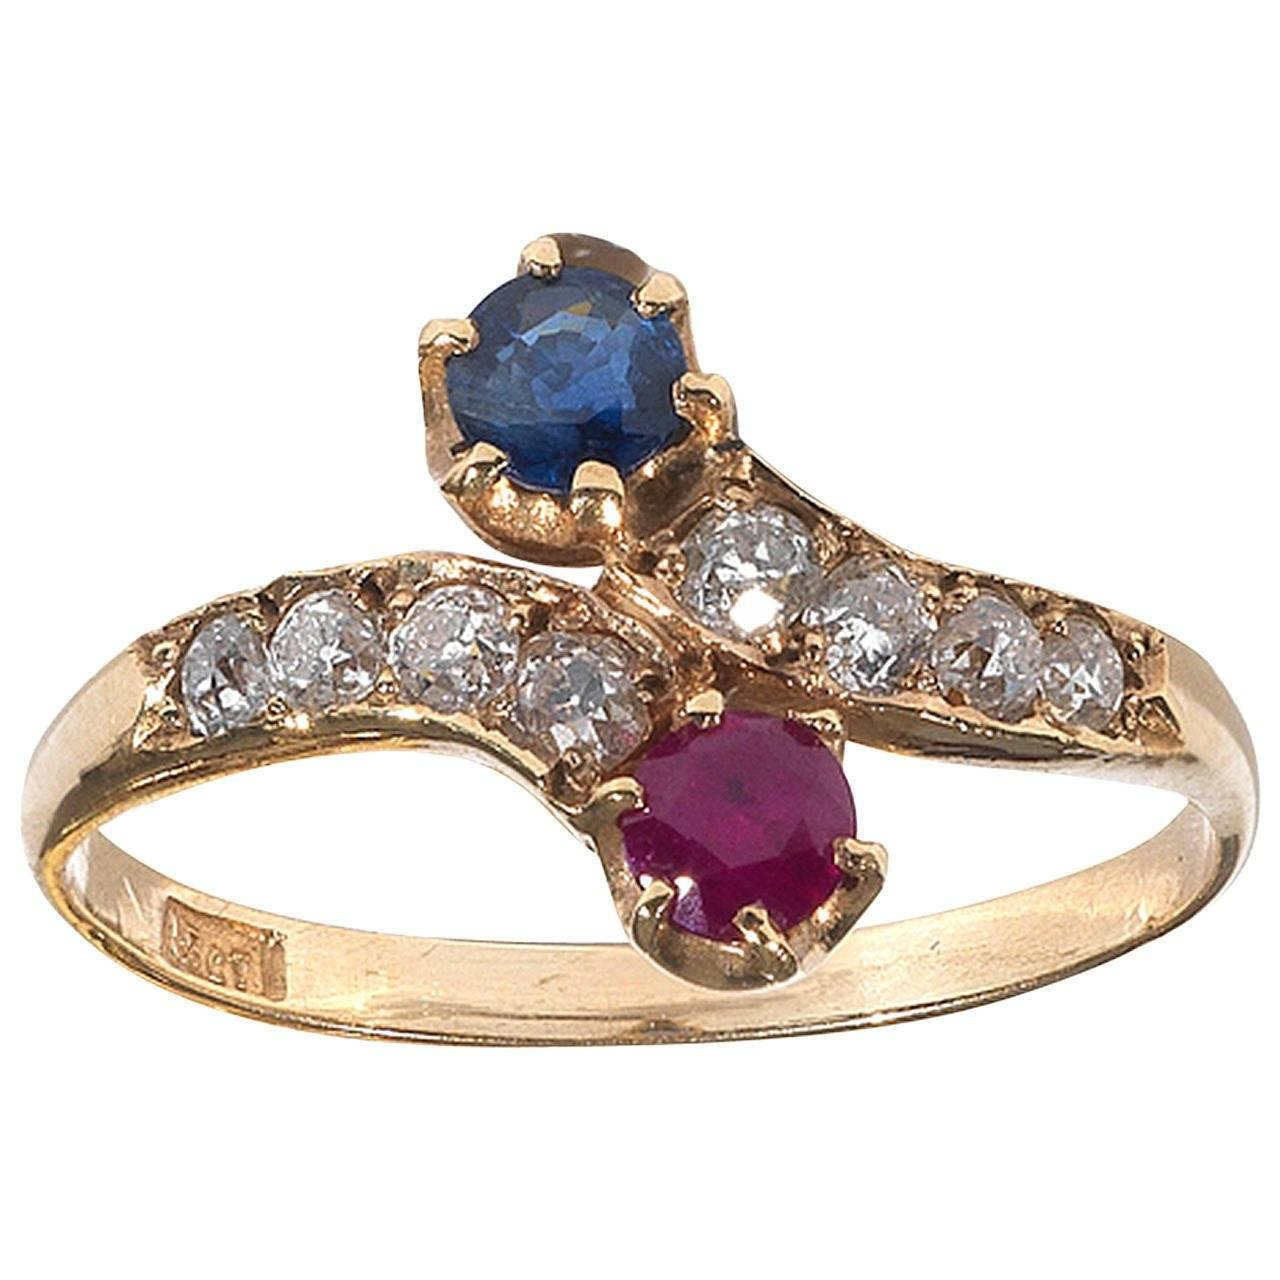 Ruby Sapphire Diamond Yellow Gold Bypass Ring For Sale At 1Stdibs Intended For Engagement Rings Ruby And Diamond (Gallery 15 of 15)